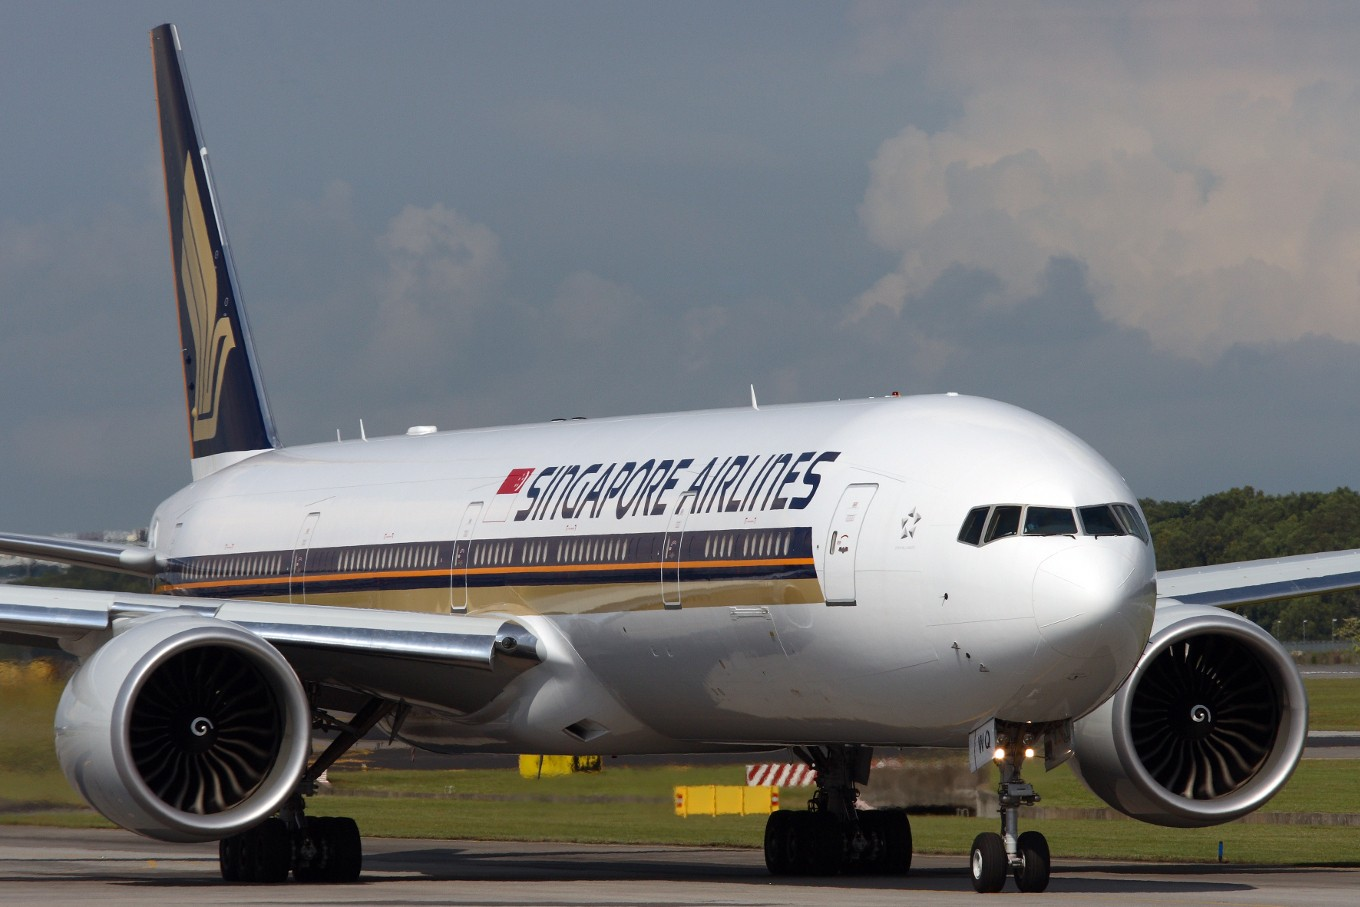 Singapore airlines signs us138 order for 39 boeing airplanes singapore airlines signs us138 order for 39 boeing airplanes sciox Images